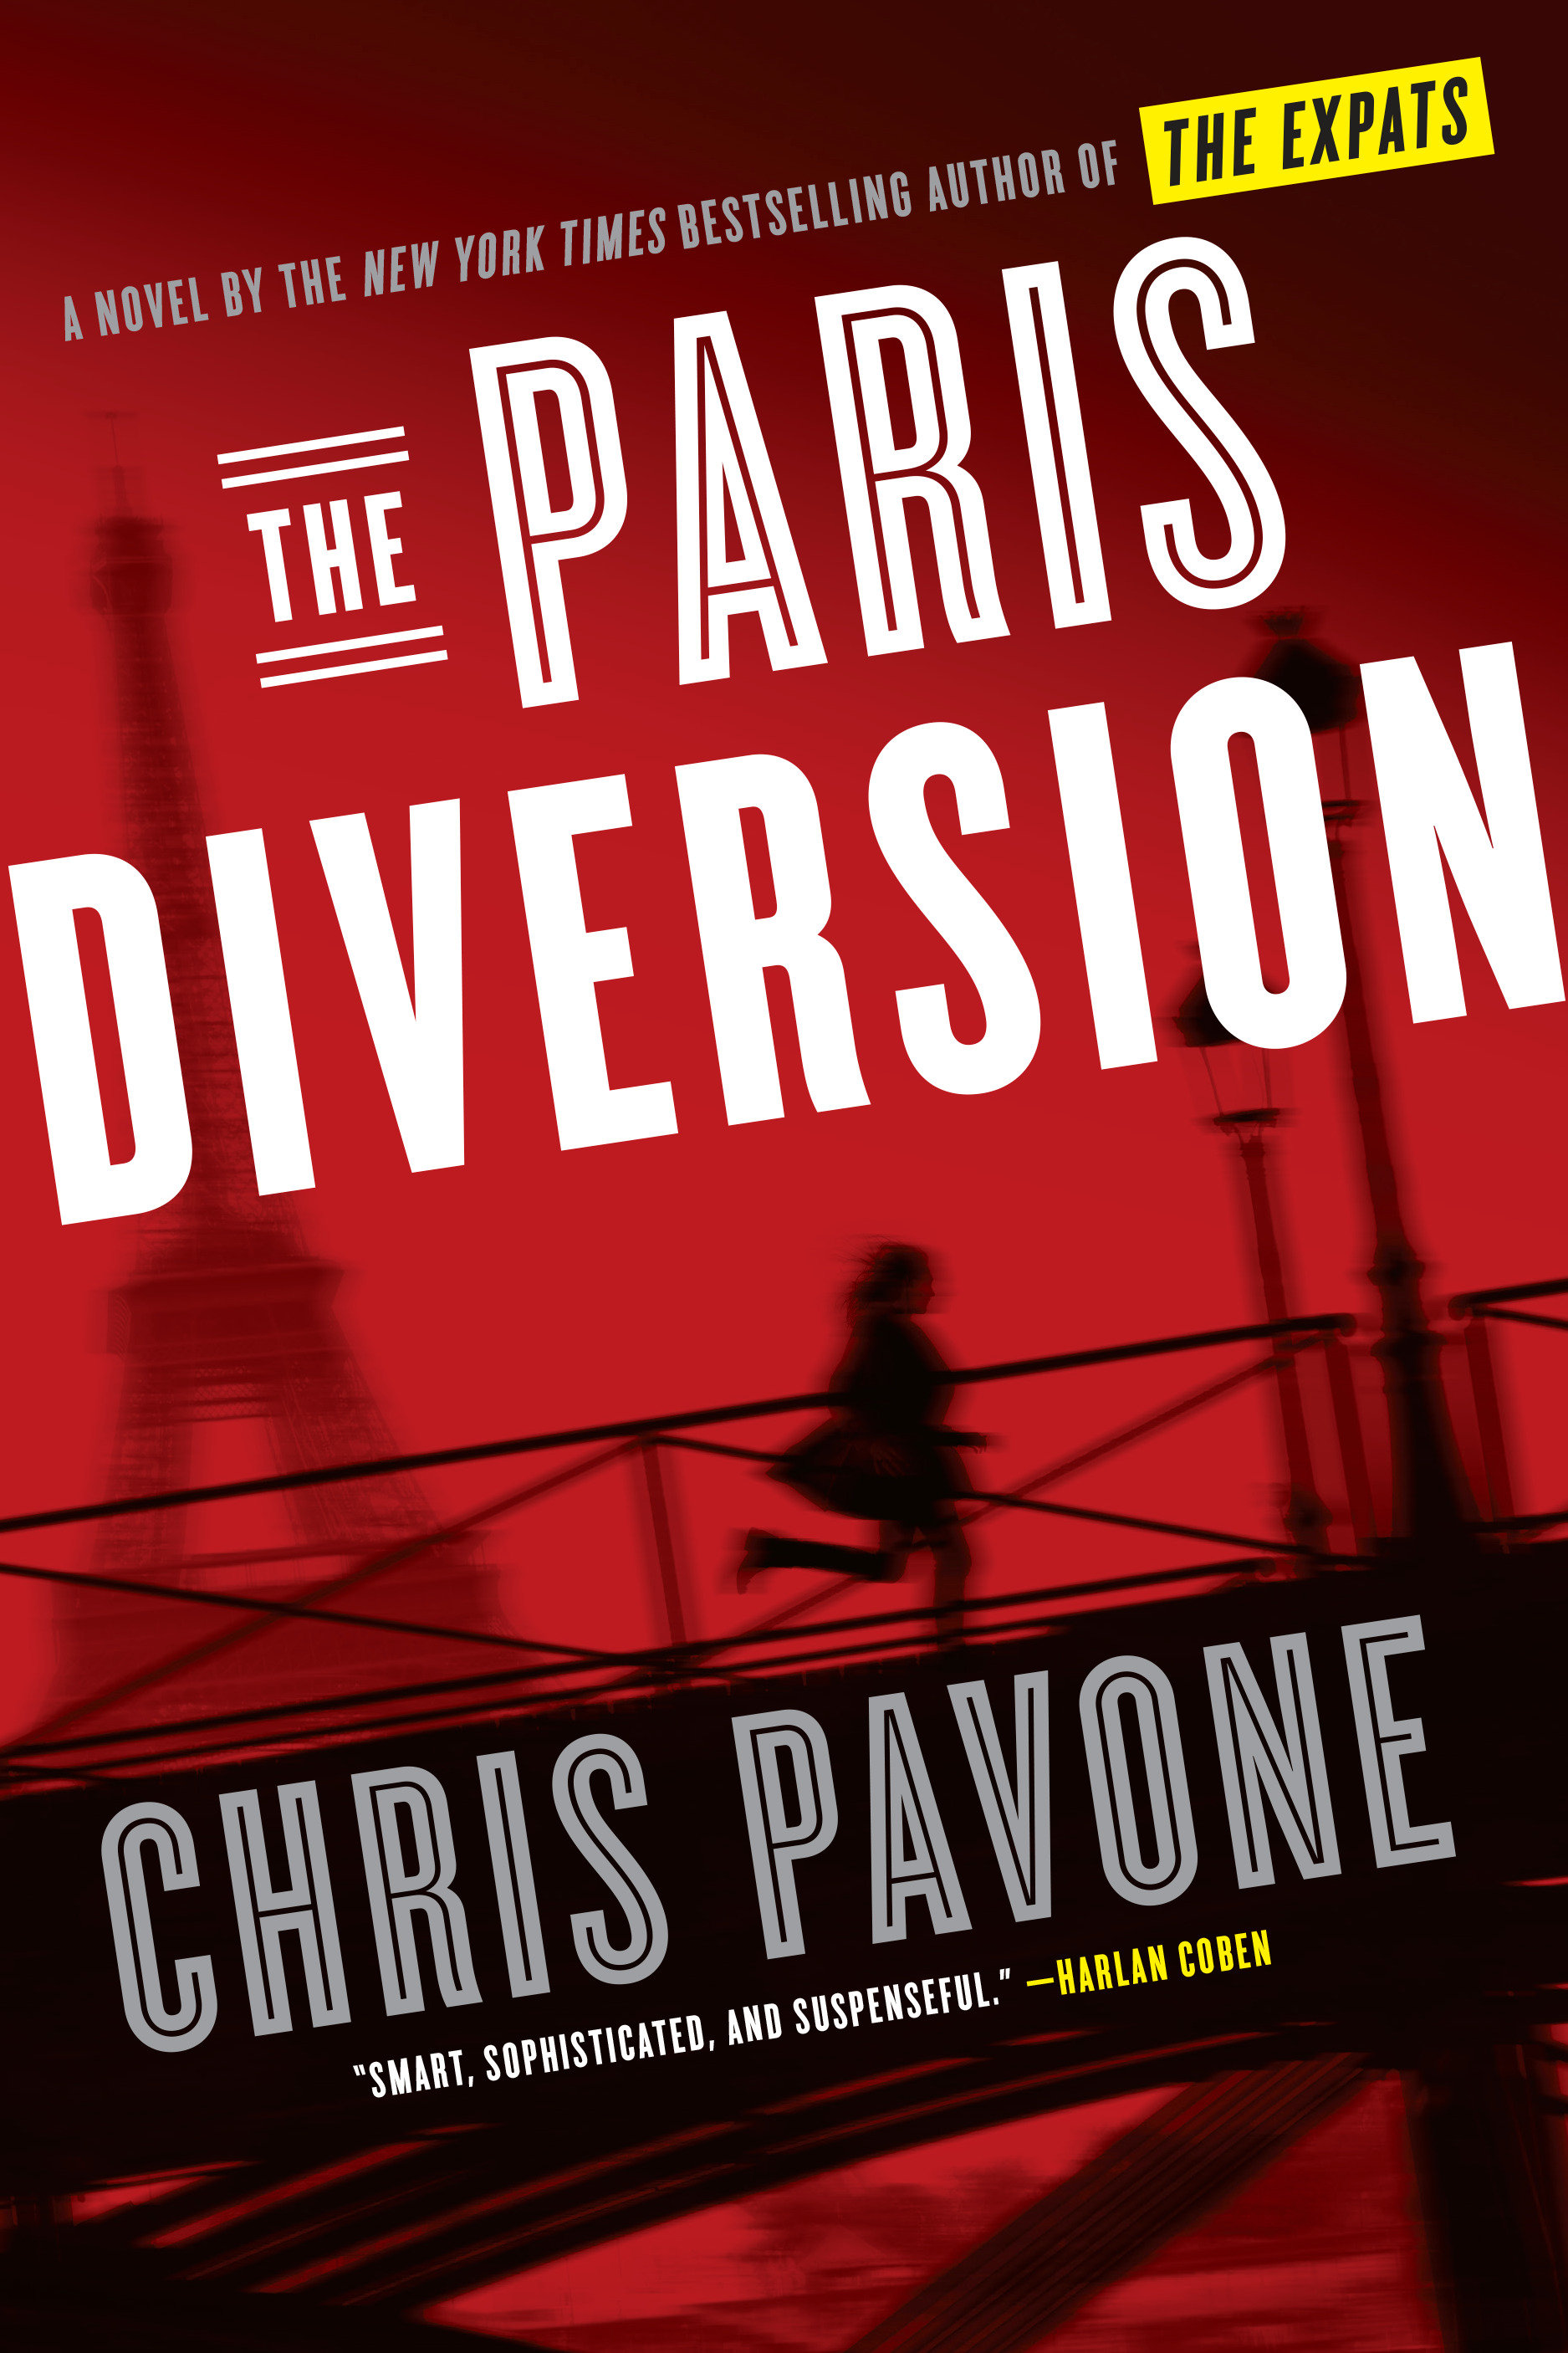 The Paris Diversion A novel by the New York Times bestselling author of The Expats